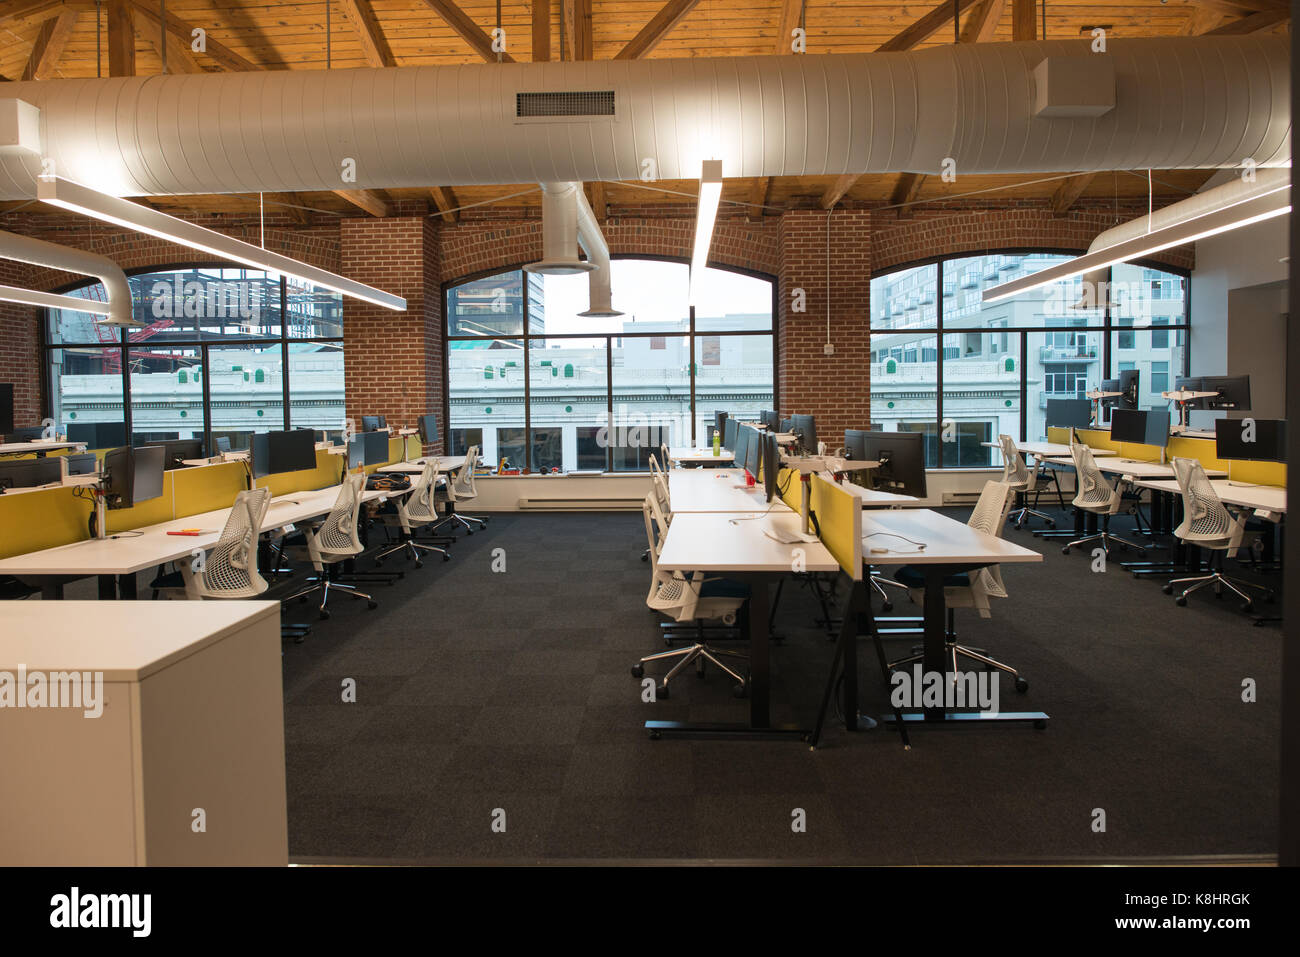 open concept office space. Trendy Modern Open Concept Loft Office Space With Big Windows, Natural Light And A Layout To Encourage Collaboration, Creativity Innovation W